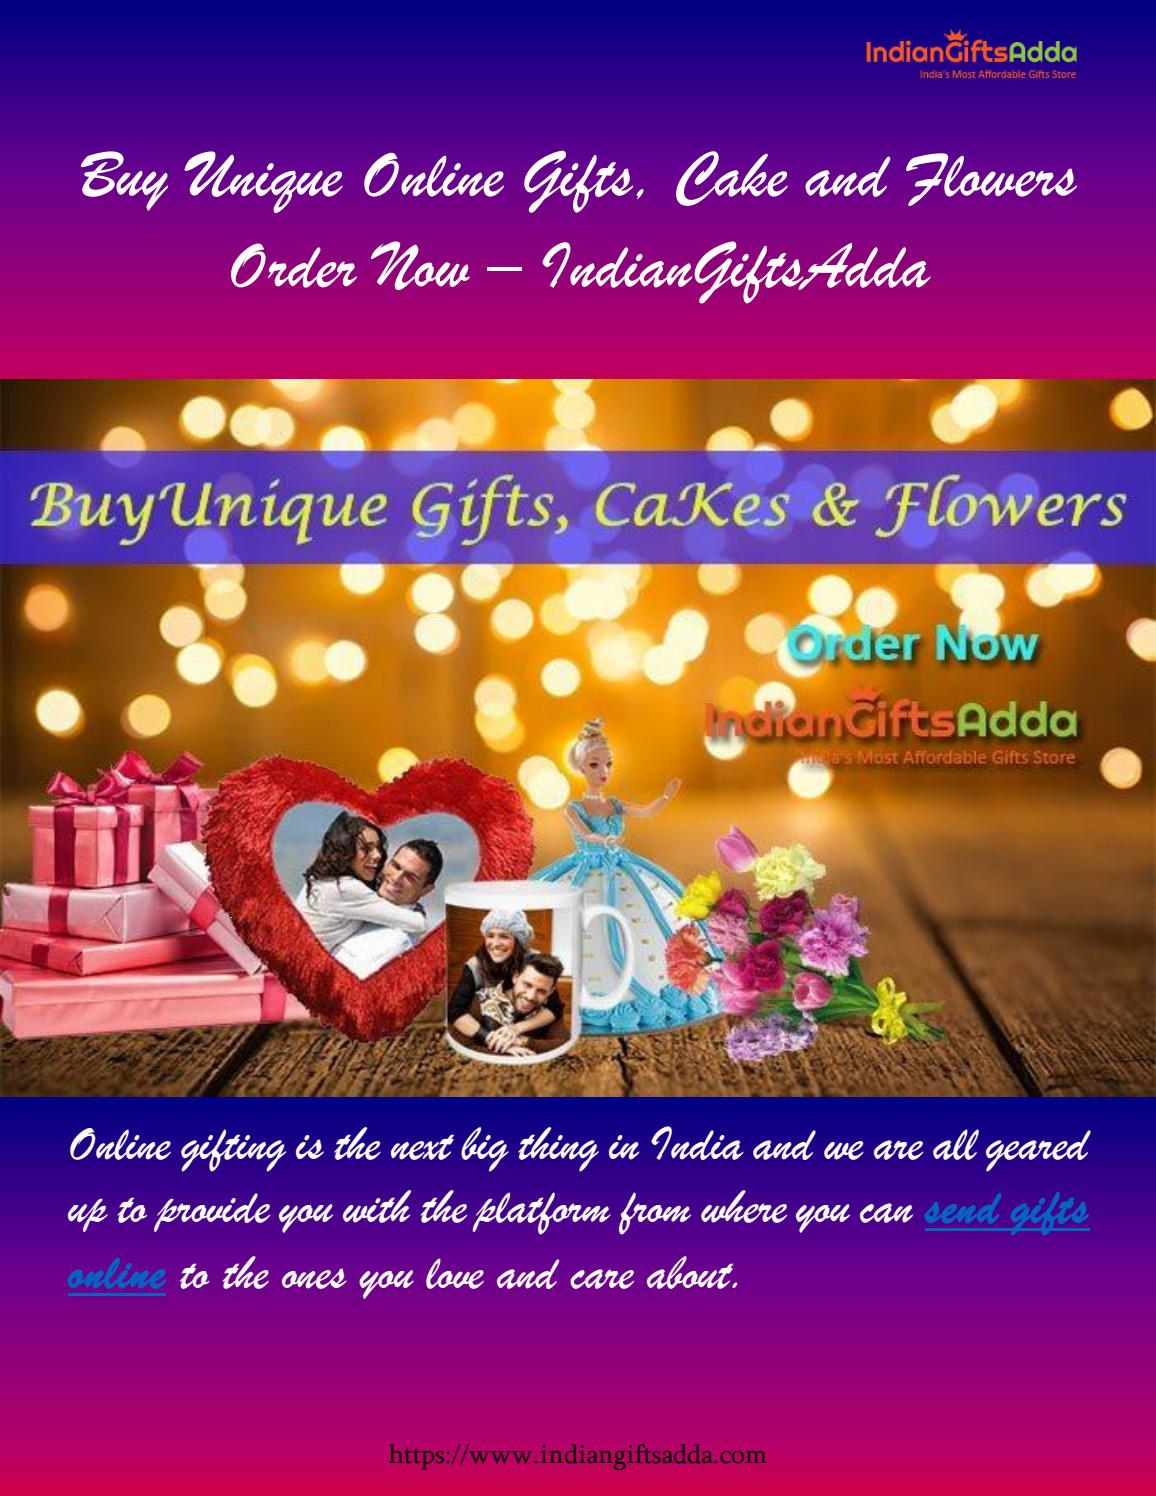 Buy Unique Online Gifts, Cake and Flowers | Order Now